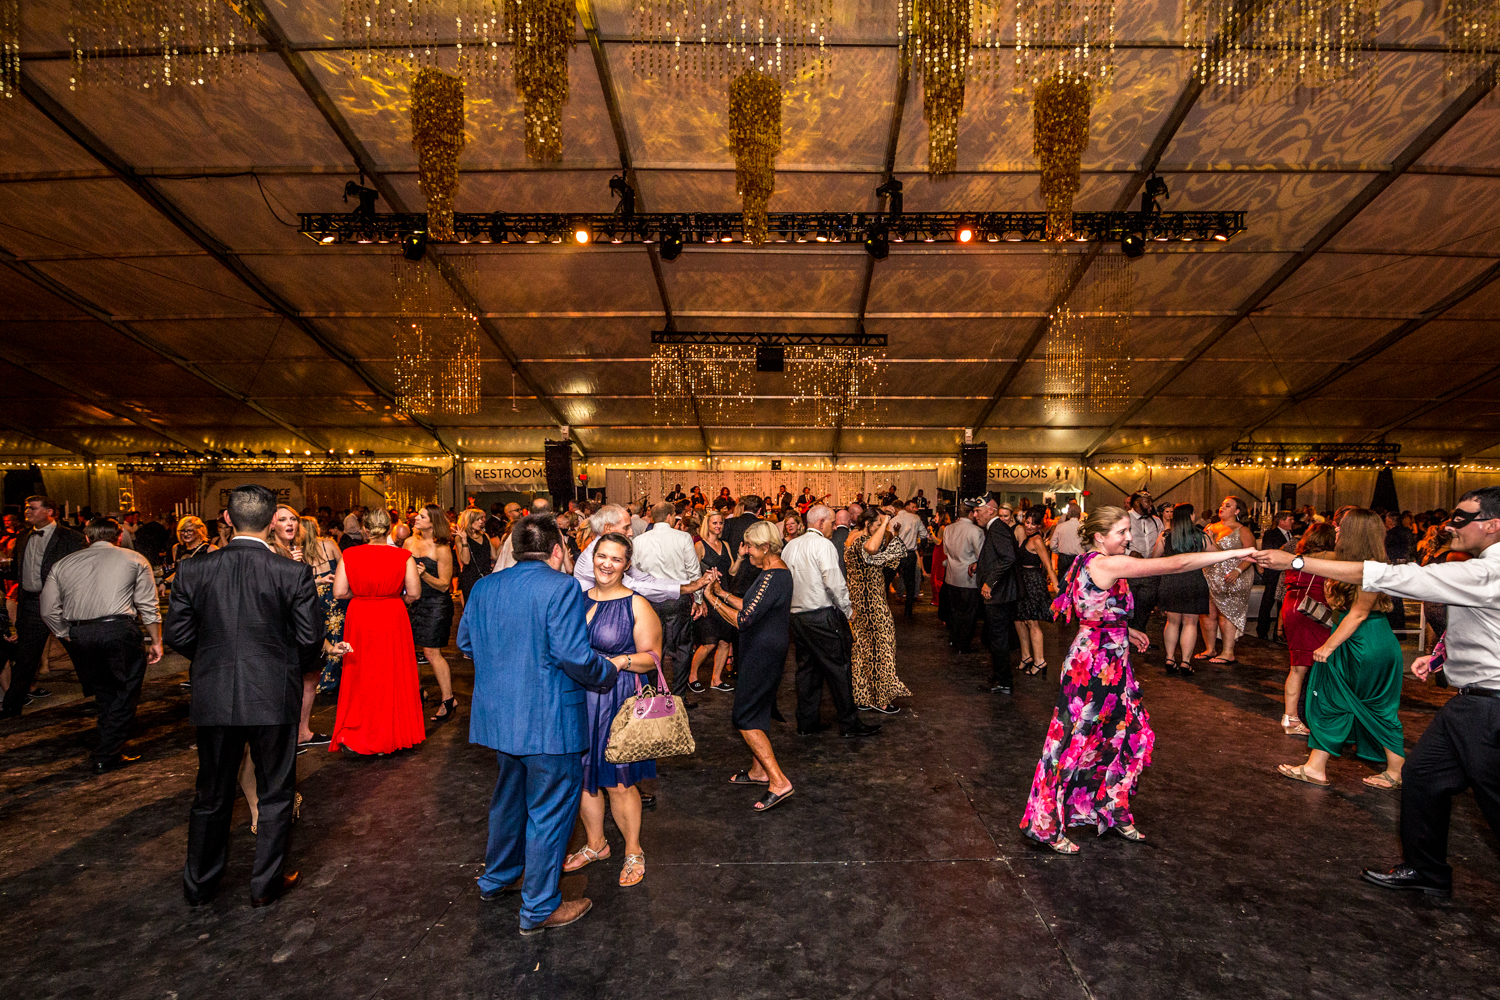 Zoofari 2019: A Masquerade Ball was held at the Cincinnati Zoo on Friday, September 13. The annual event provides support for more than 500 animals, 3,000 plant species, conservation efforts, and outreach programs for over 300,000 students each year. Over 2,000 guests came out to celebrate the night which featured 70 restaurants, greetings with animals, a raffle to win a Kenyan safari for two, and 100 sponsors behind it all. / Image: Catherine Viox // Published: 9.14.19